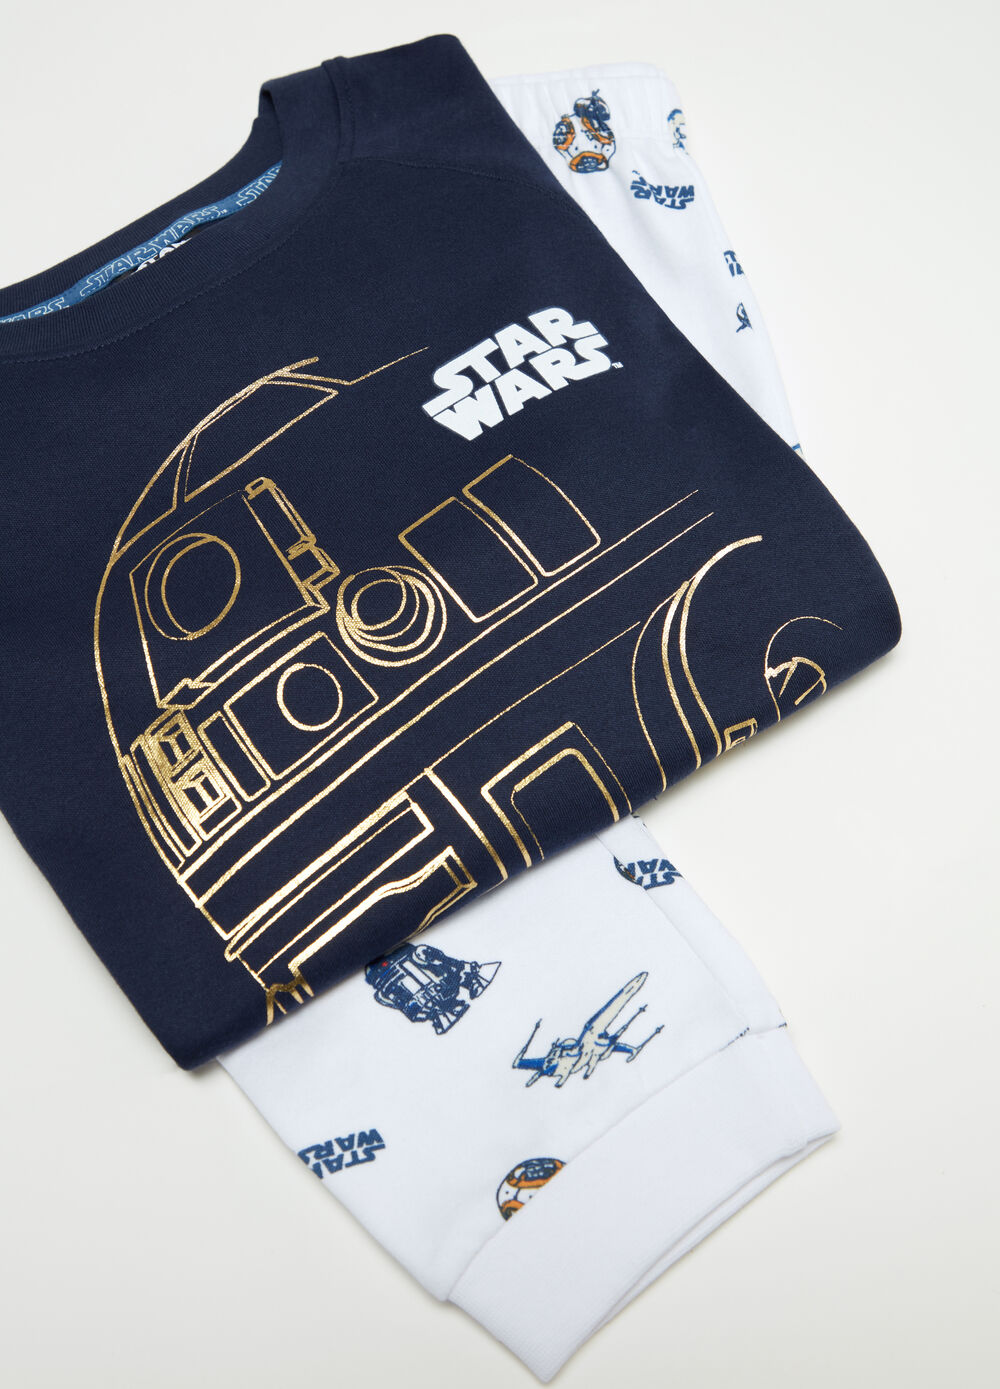 Star Wars warm cotton pyjamas